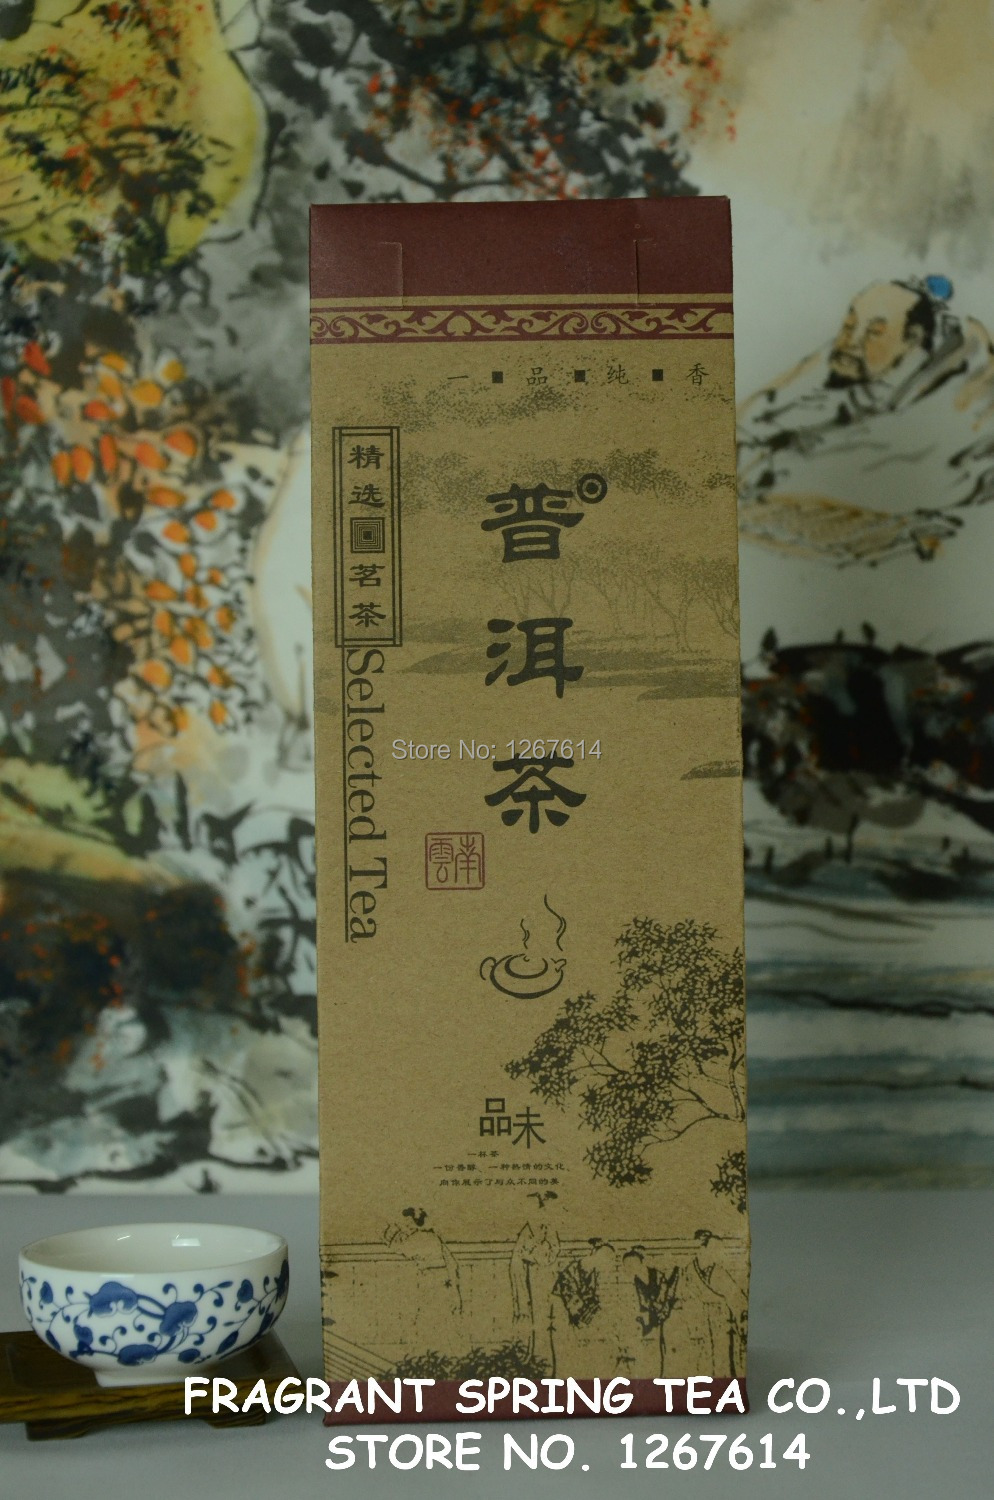 Loose Tea of Yunnan Old Puerh Factory, Direct Sell from the Factory Warehouse, Good Taste and Color(China (Mainland))